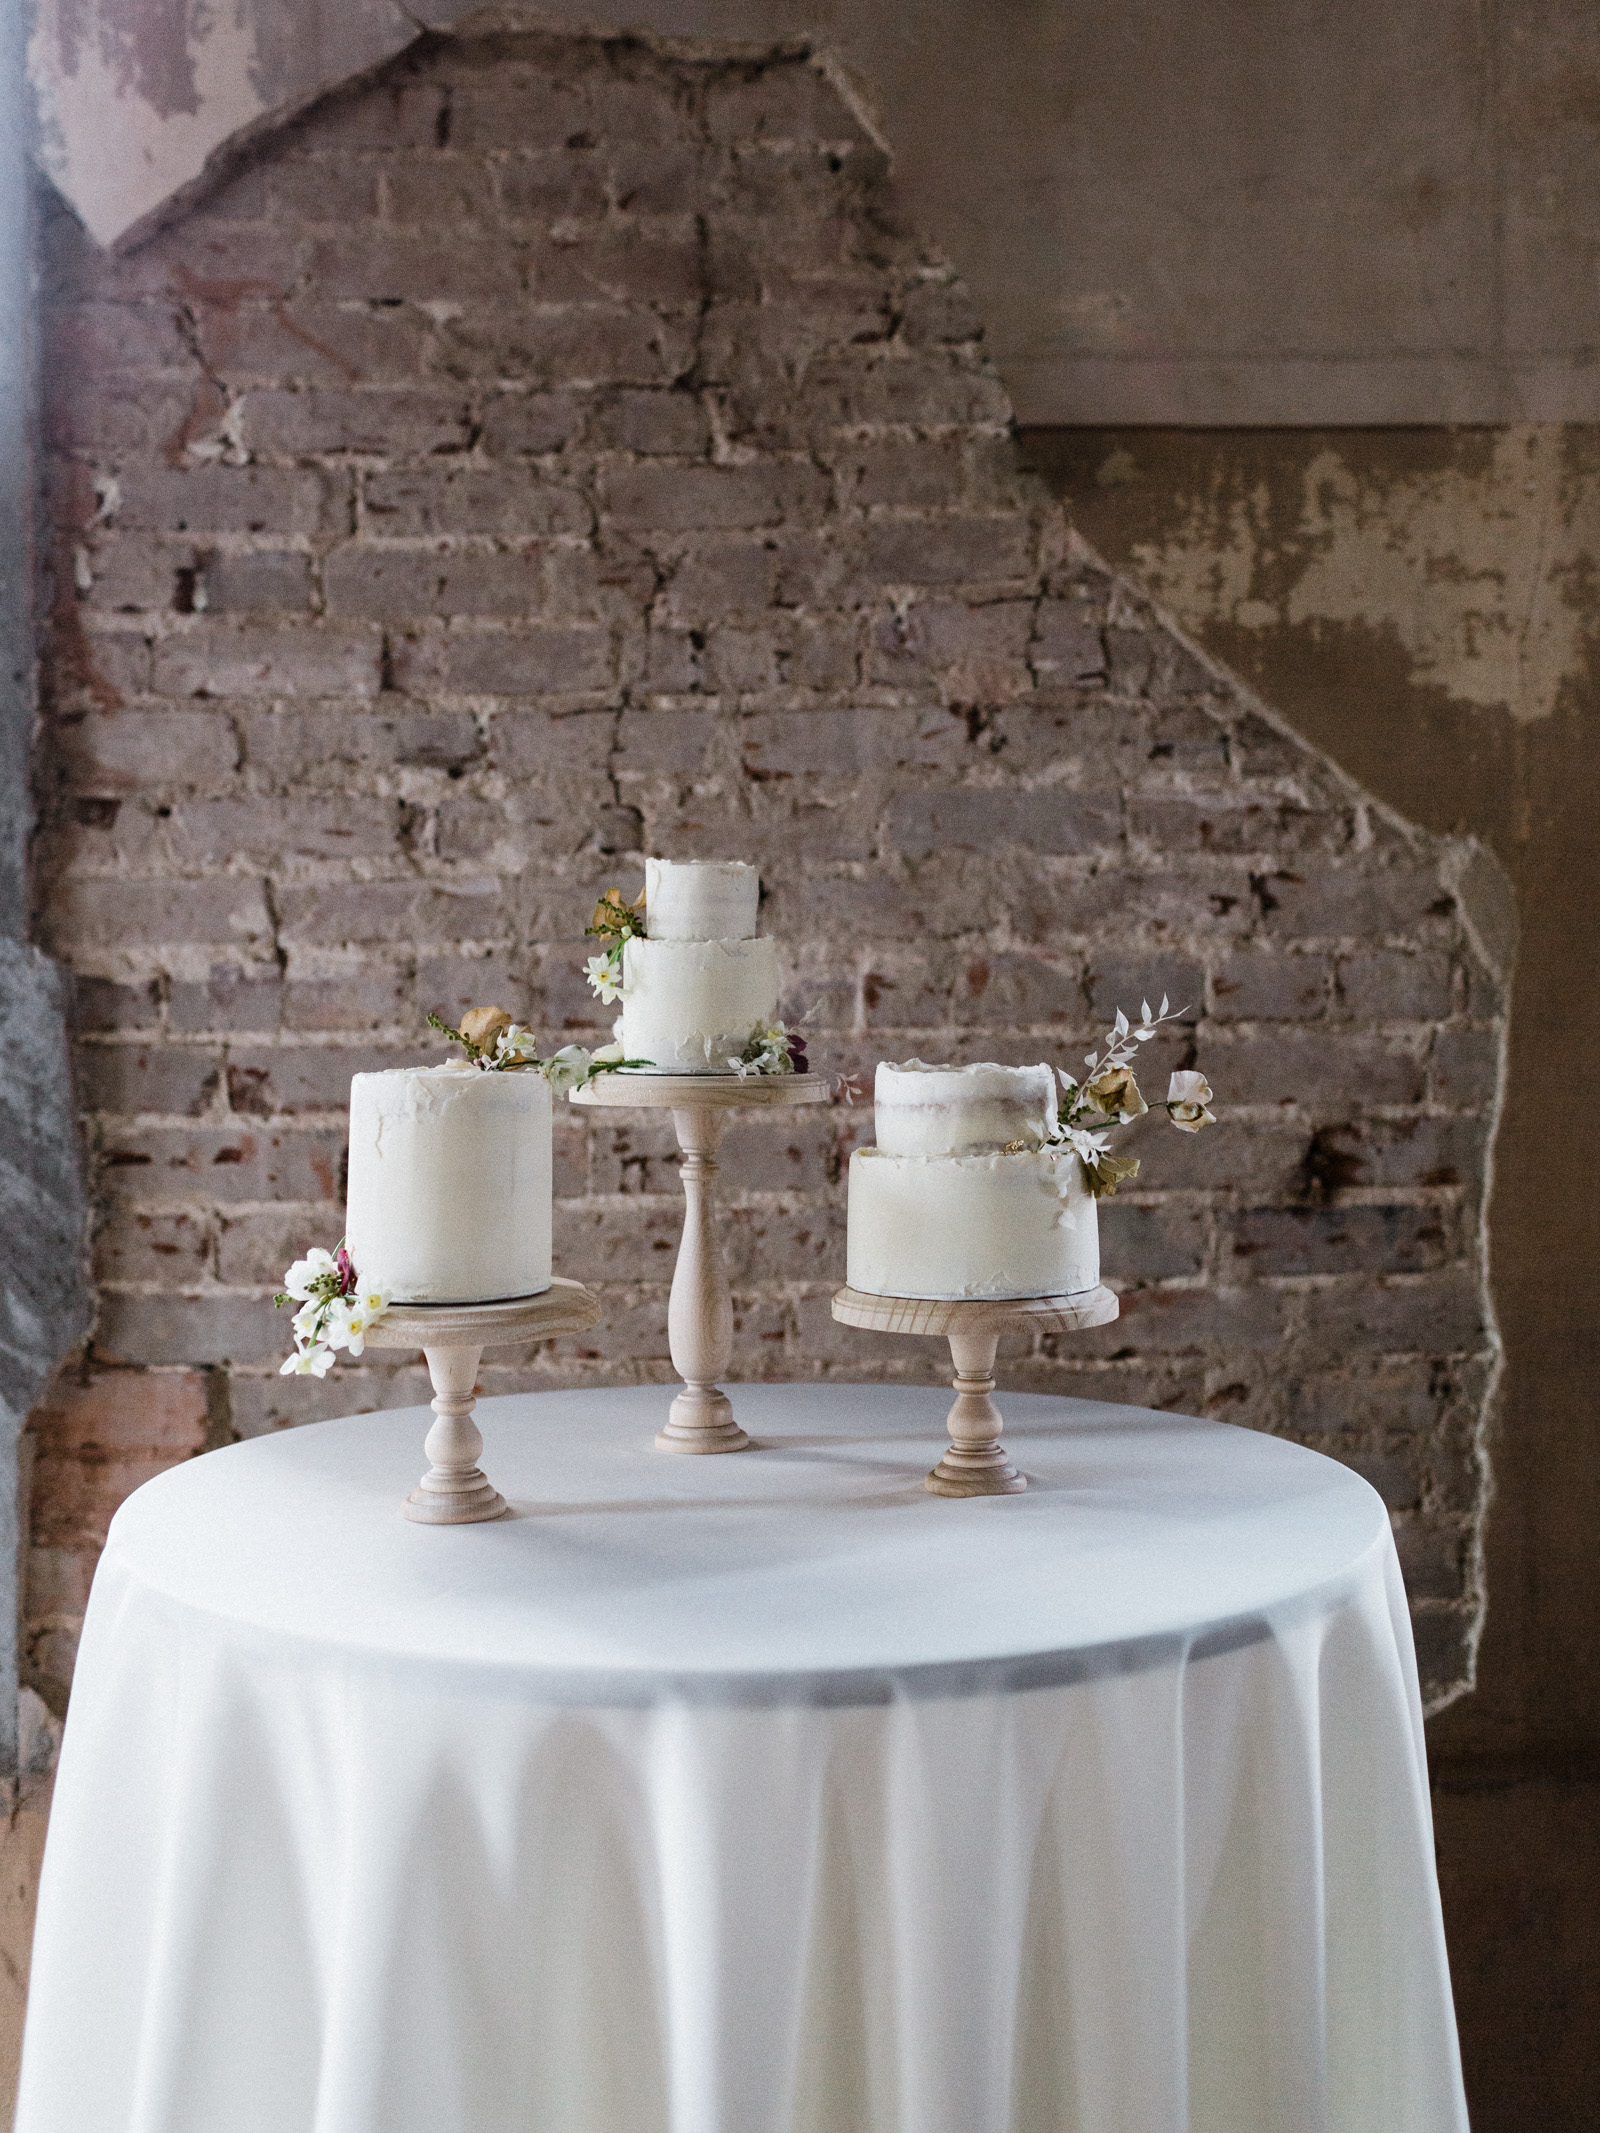 Wedding cakes by Manda Mobley Cake studio at the century hall